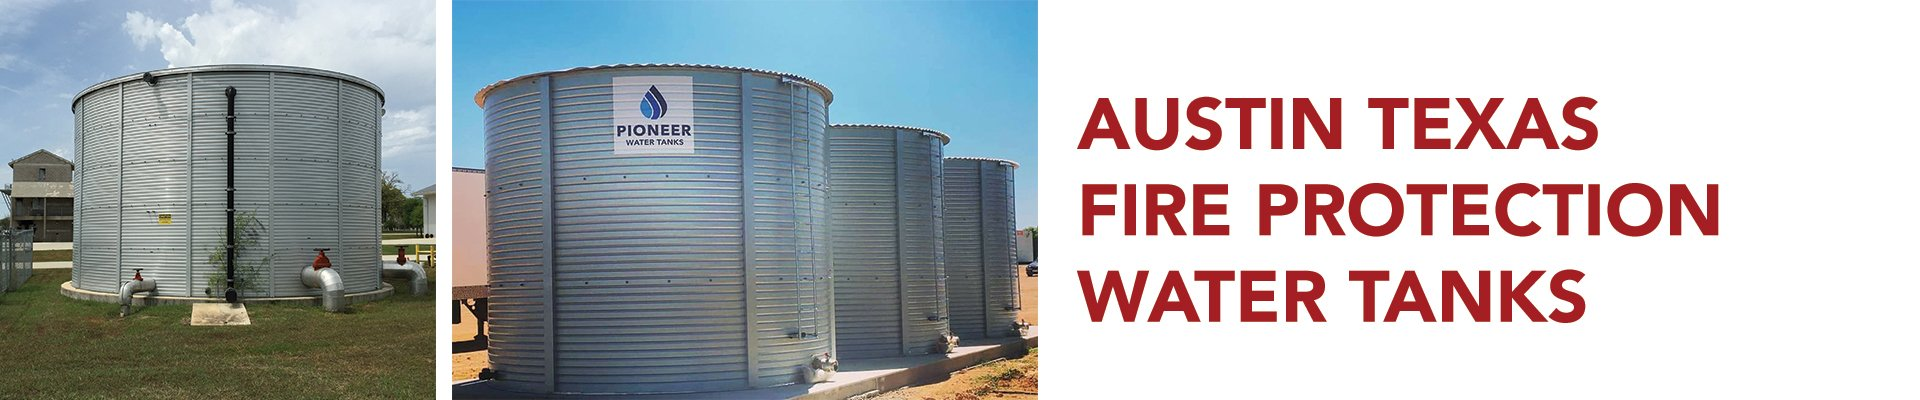 Austin Texas Fire Protection Water Tanks